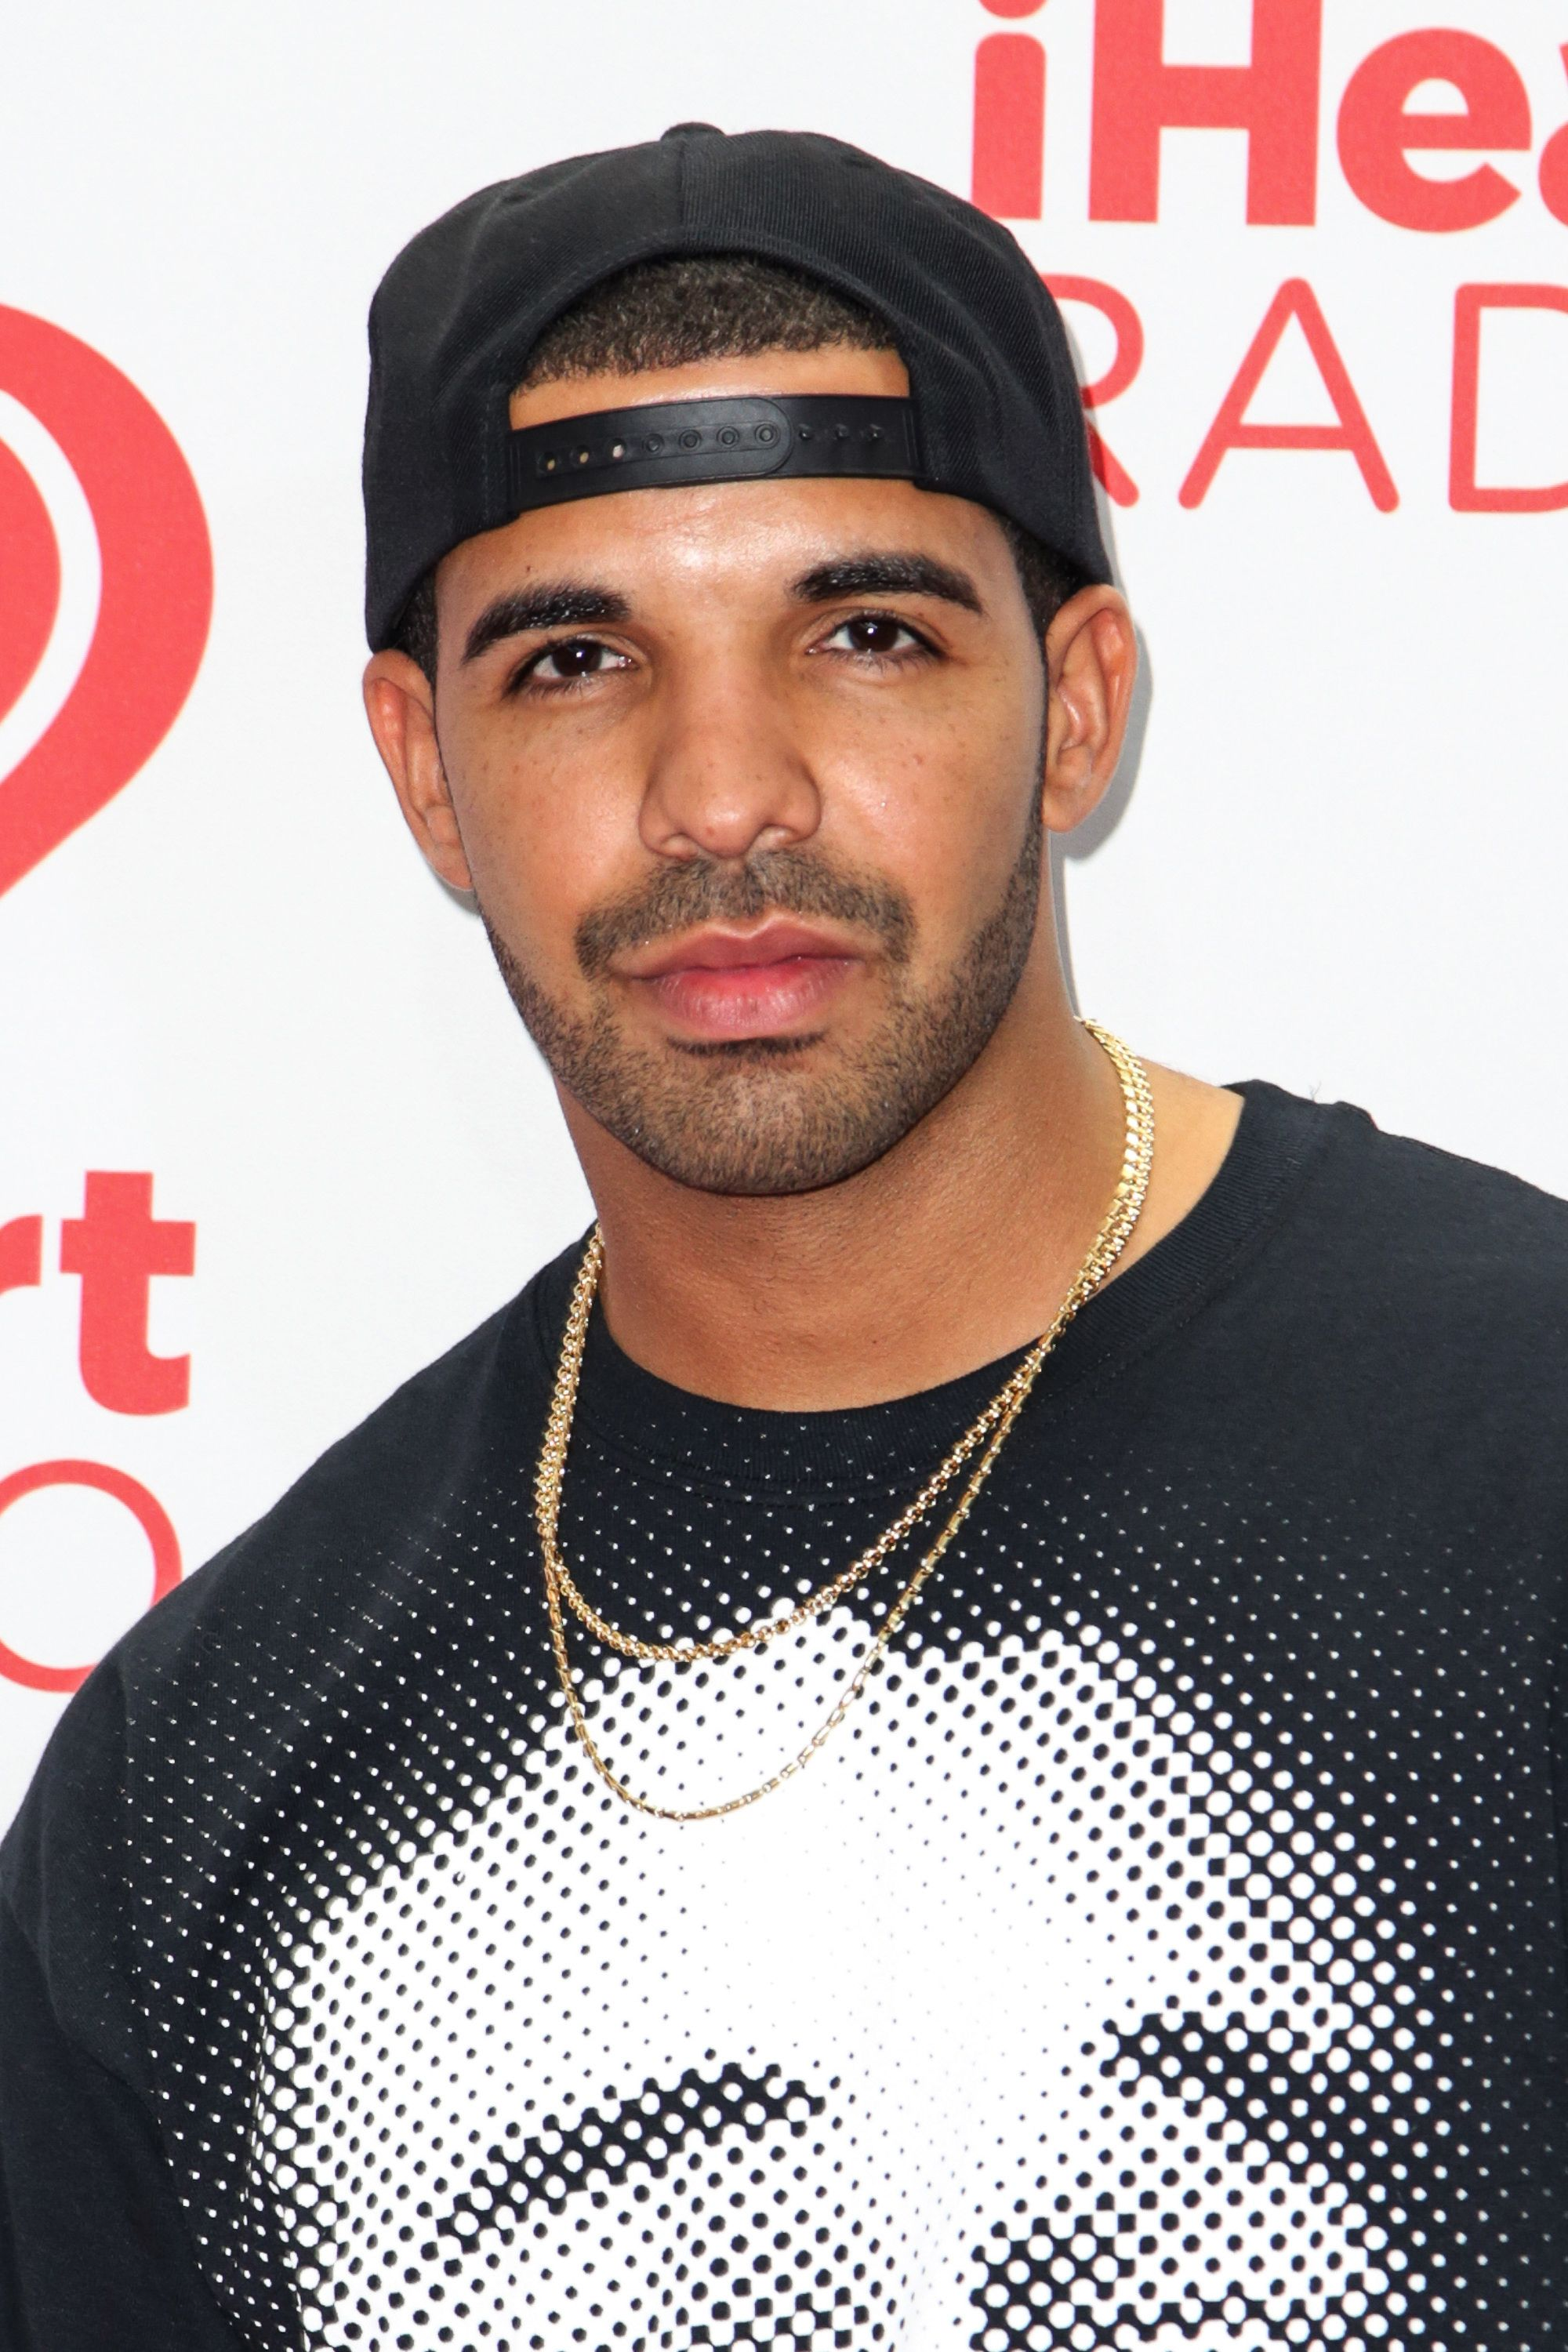 "<p><em>Nothing Was The Same</em> including Drake's eyebrows which are farther apart than <a href=""https://www.youtube.com/watch?v=y7CTlBUsmHs"" target=""_blank"">""Houstatlantavegas.""</a></p>"